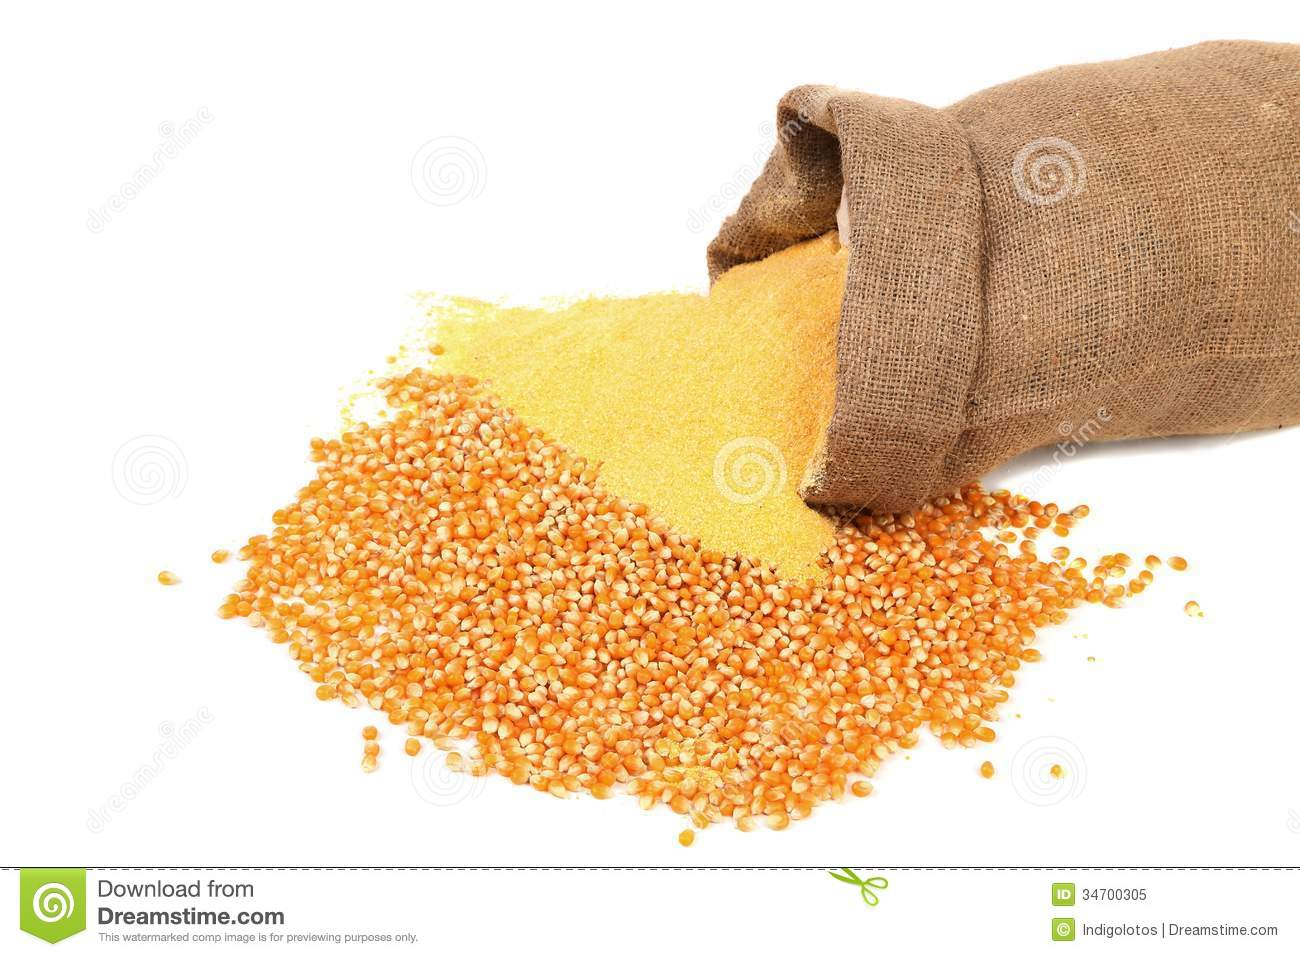 Corn Meal And Grain In Bag Royalty Free Stock Photo.